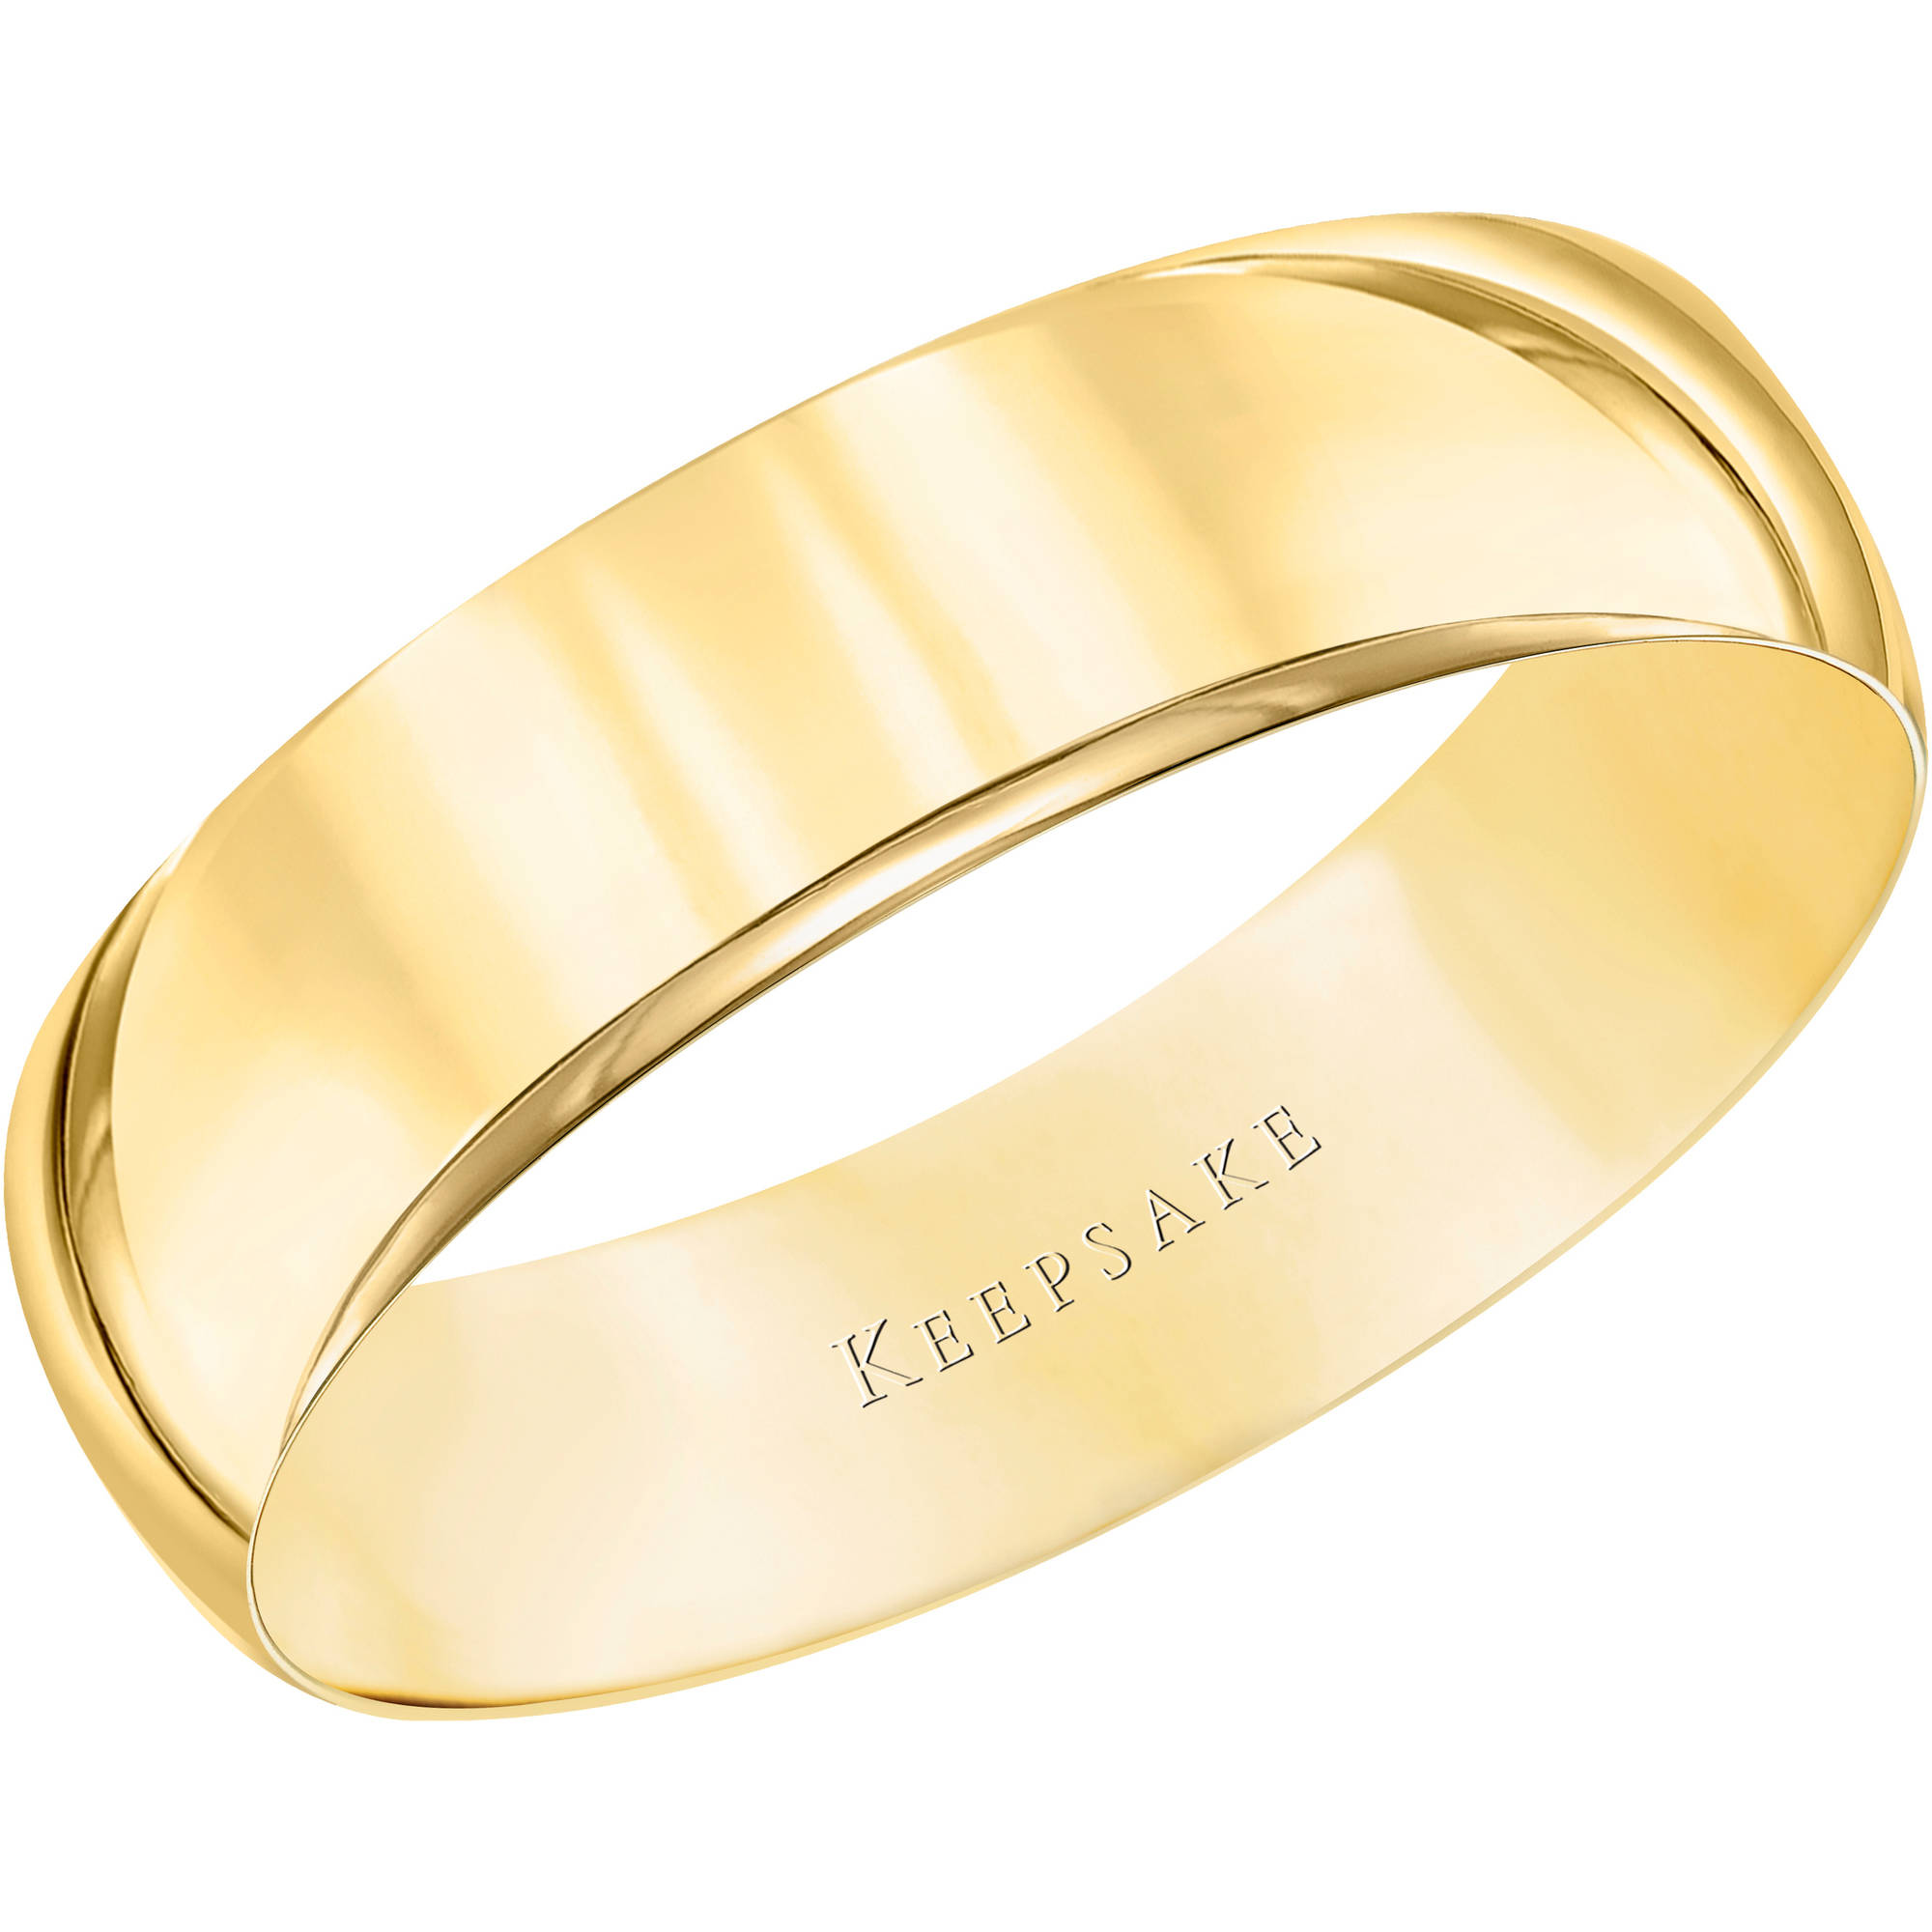 Keepsake 10kt Yellow Gold Wedding Band With High Polish Finish, 5mm    Walmart.com